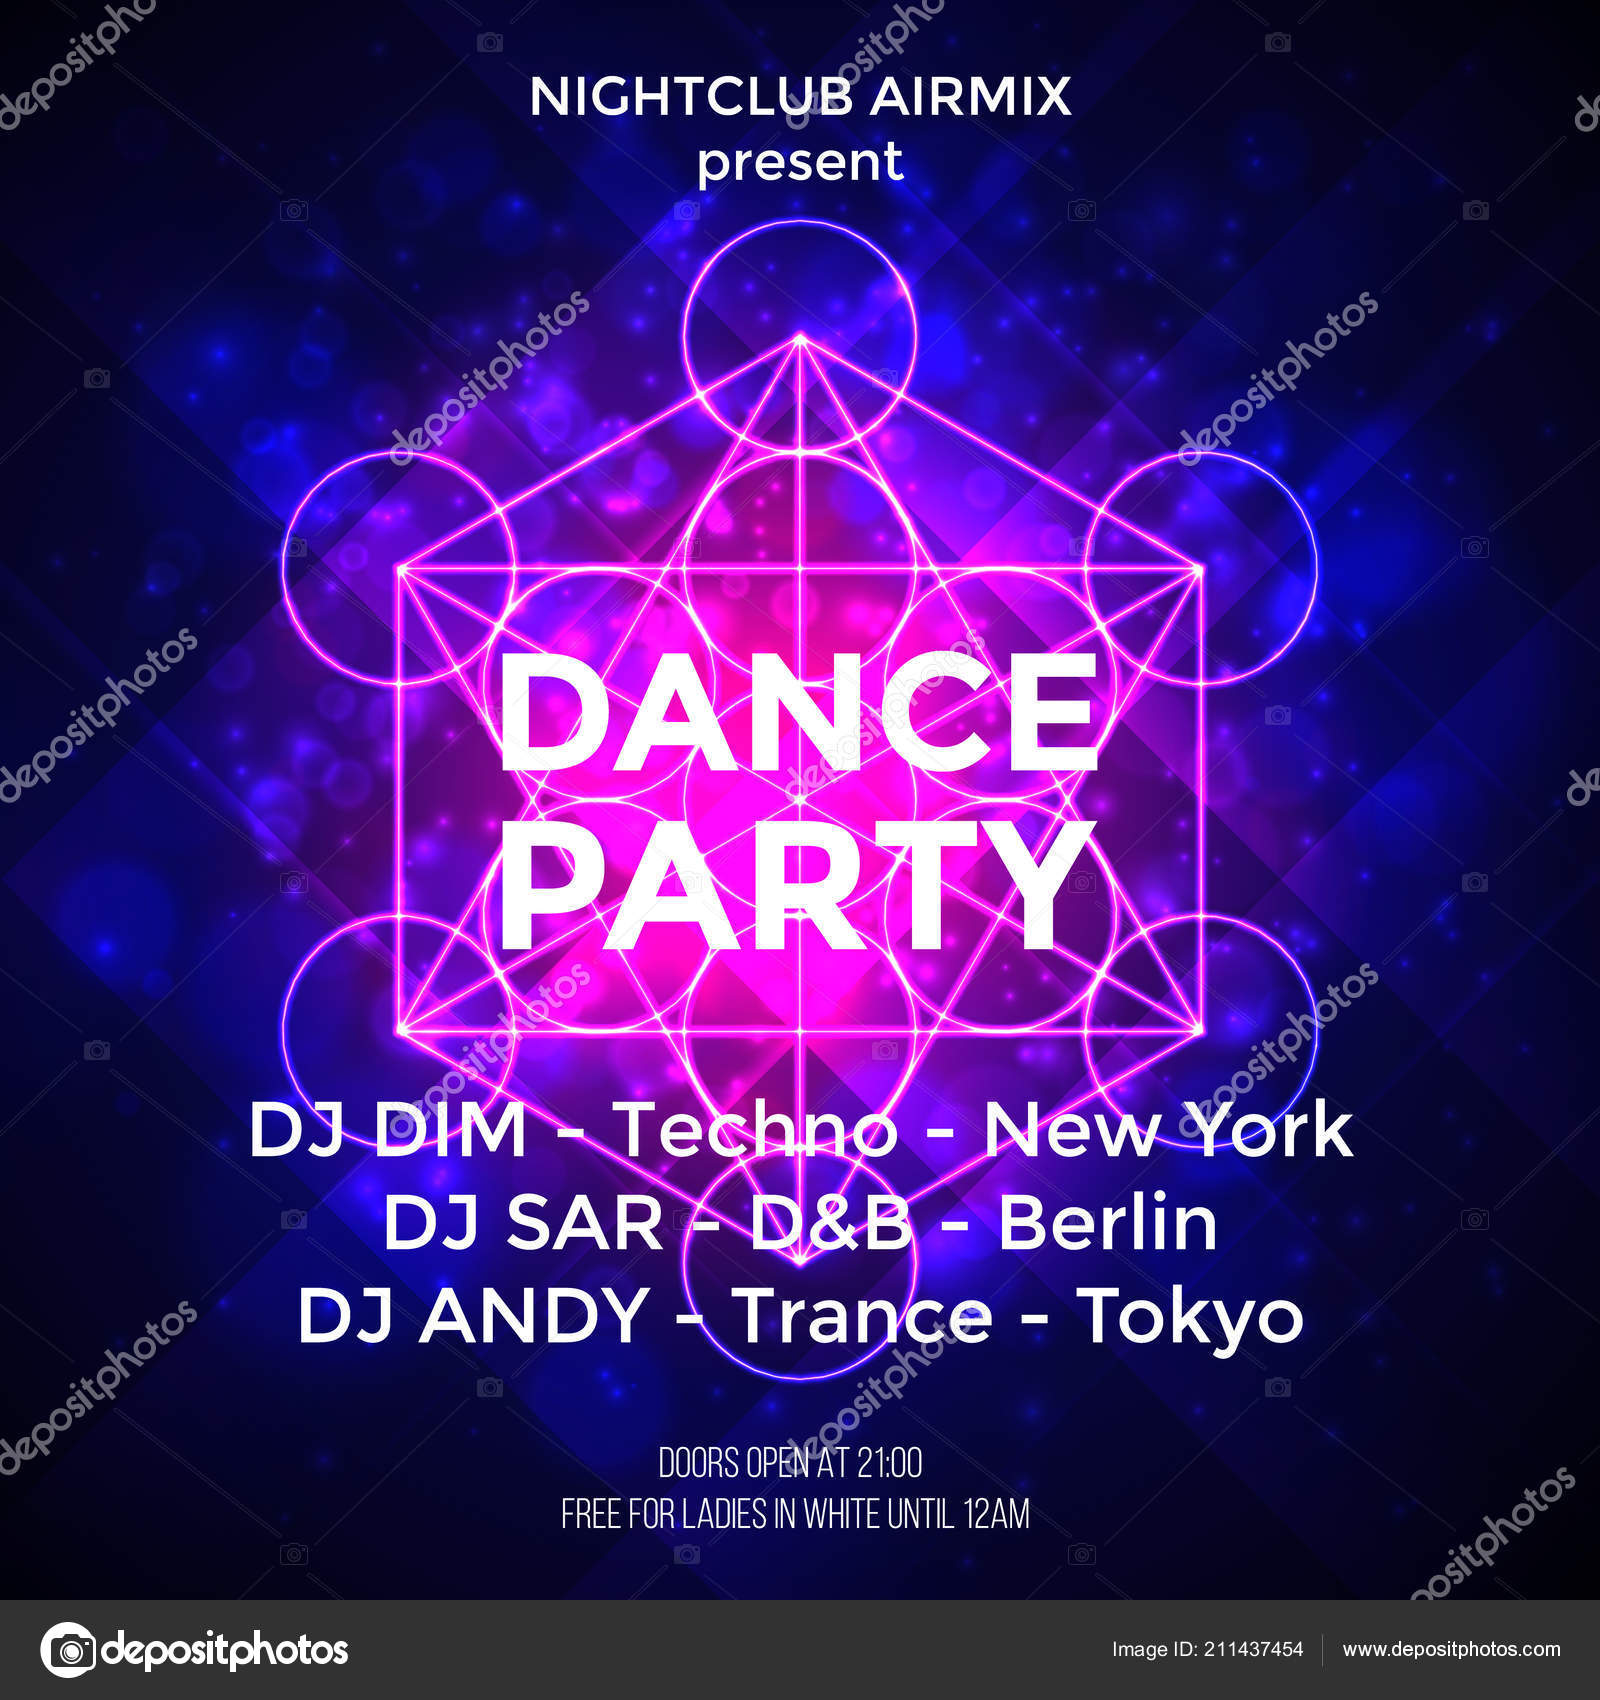 Dance party poster vector background template with particles